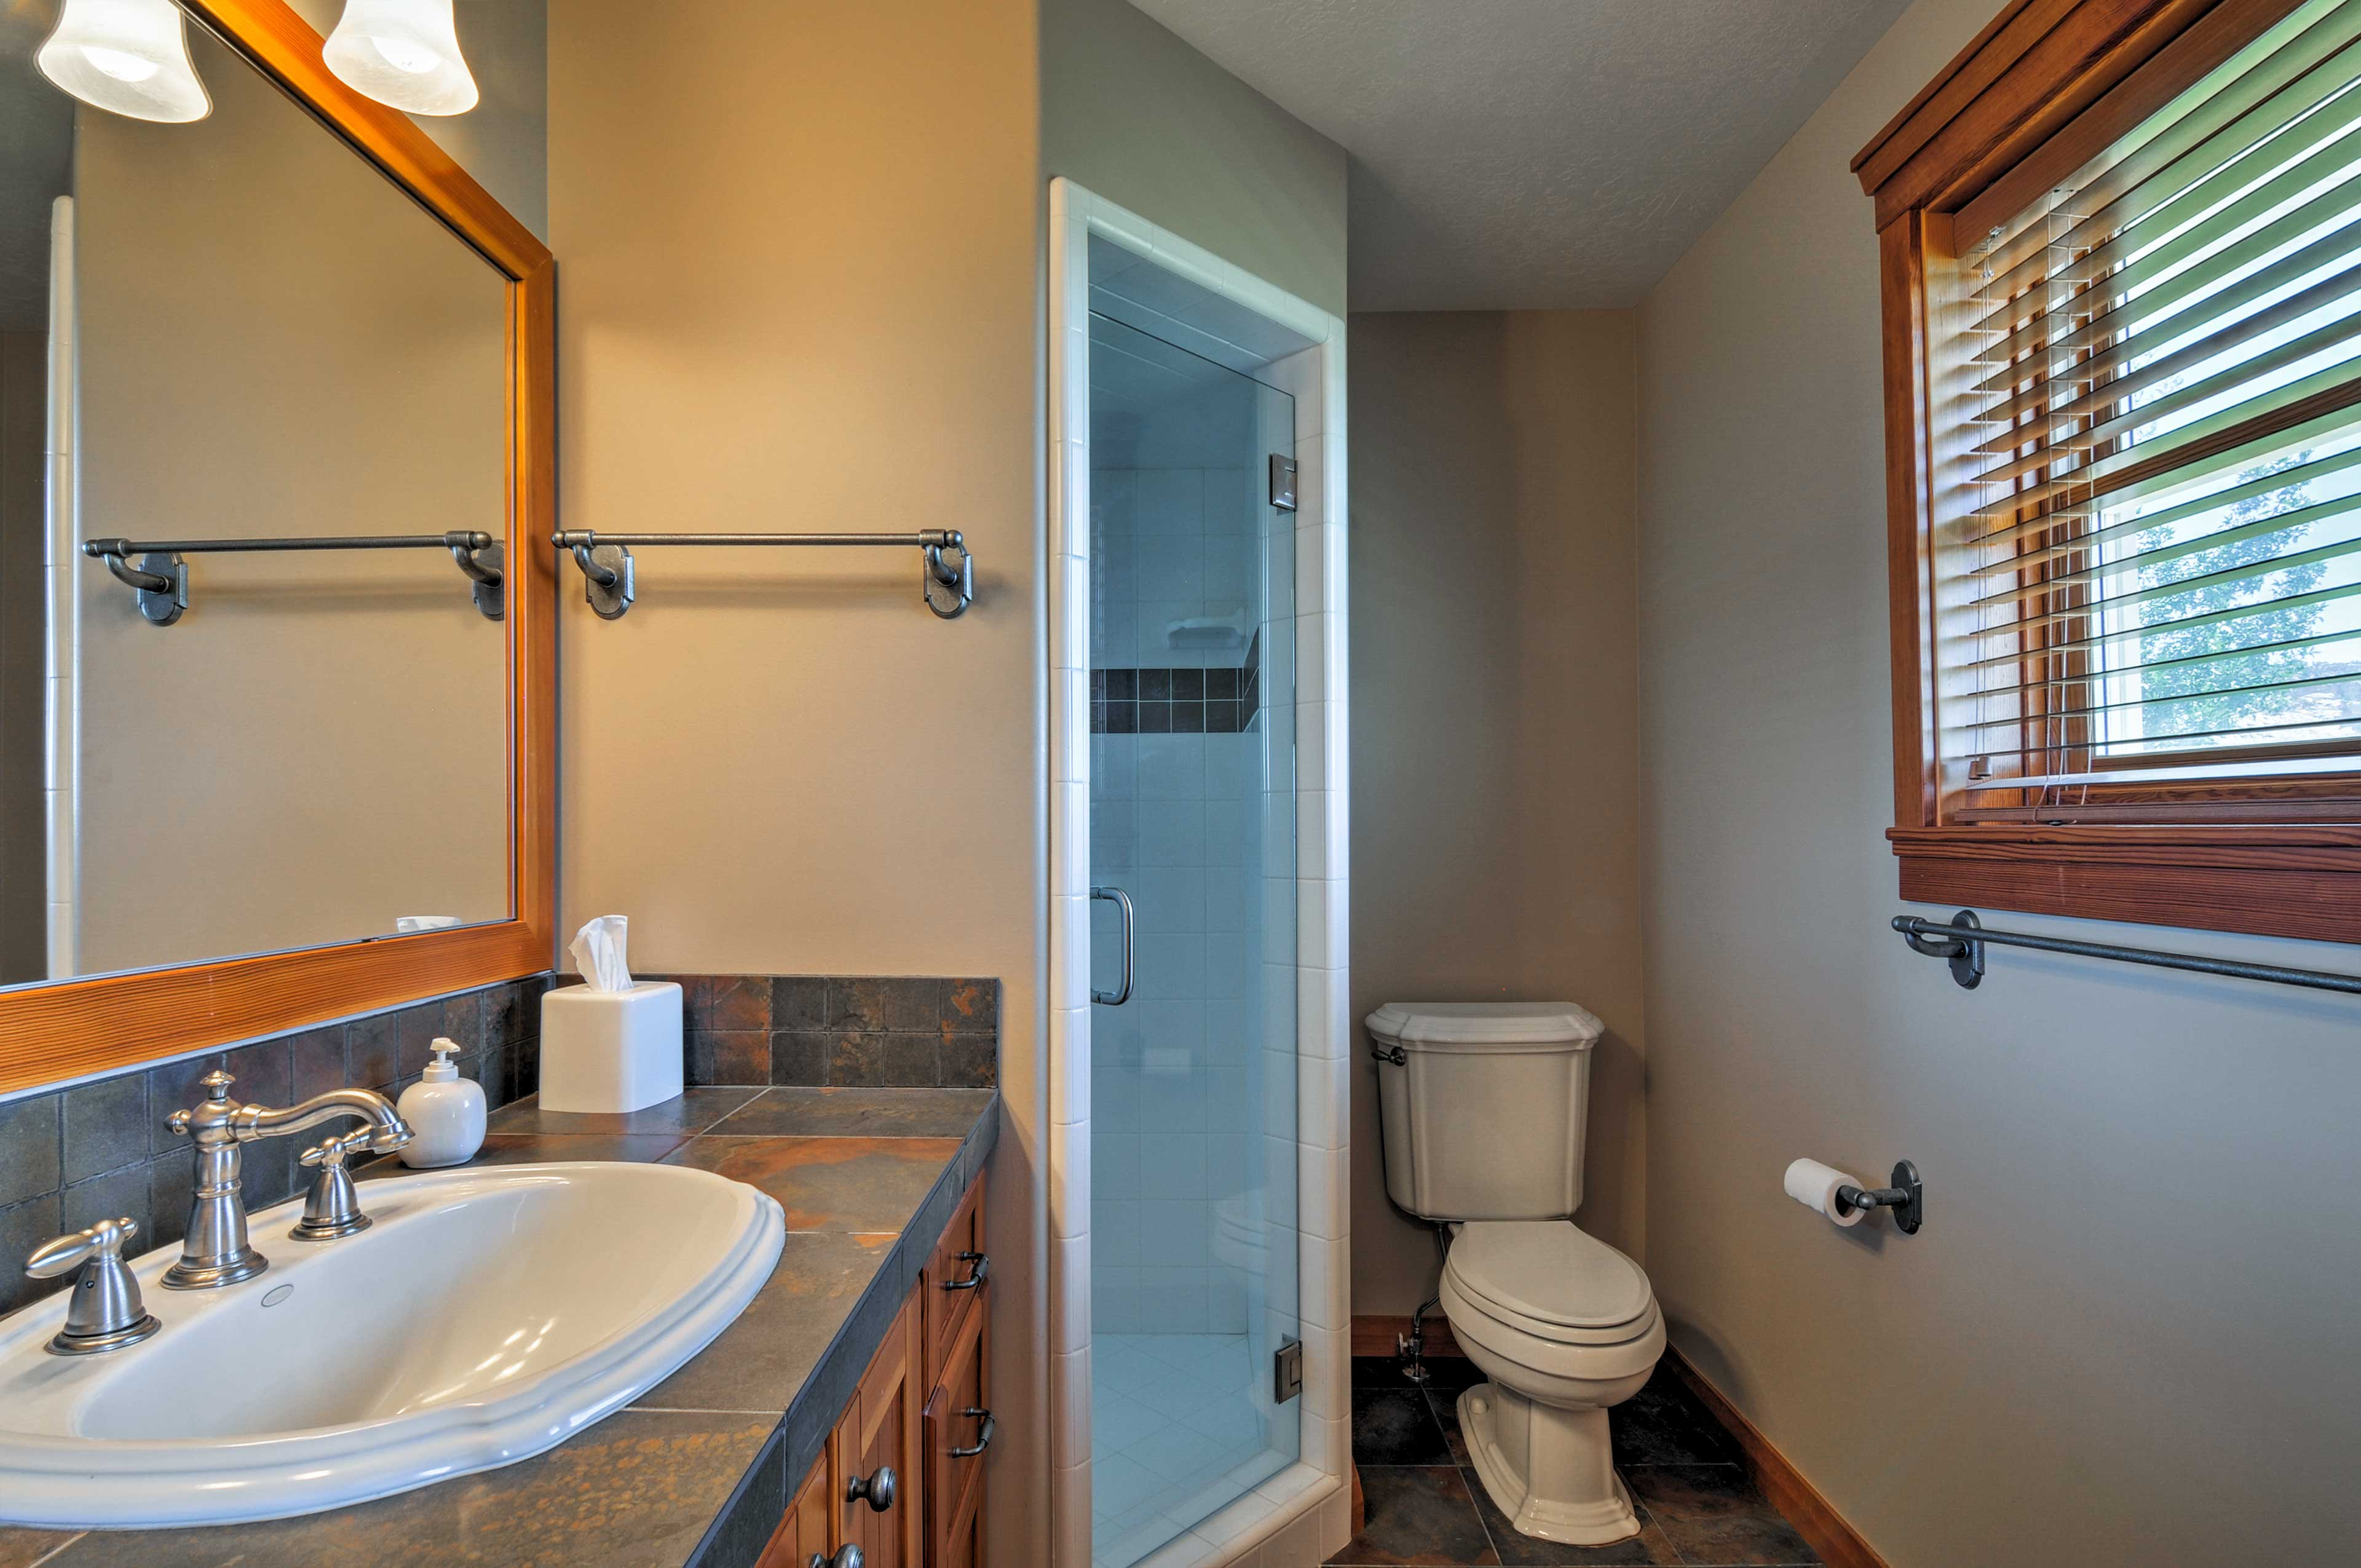 You'll love showering in this contemporary glass-doored walk-in.